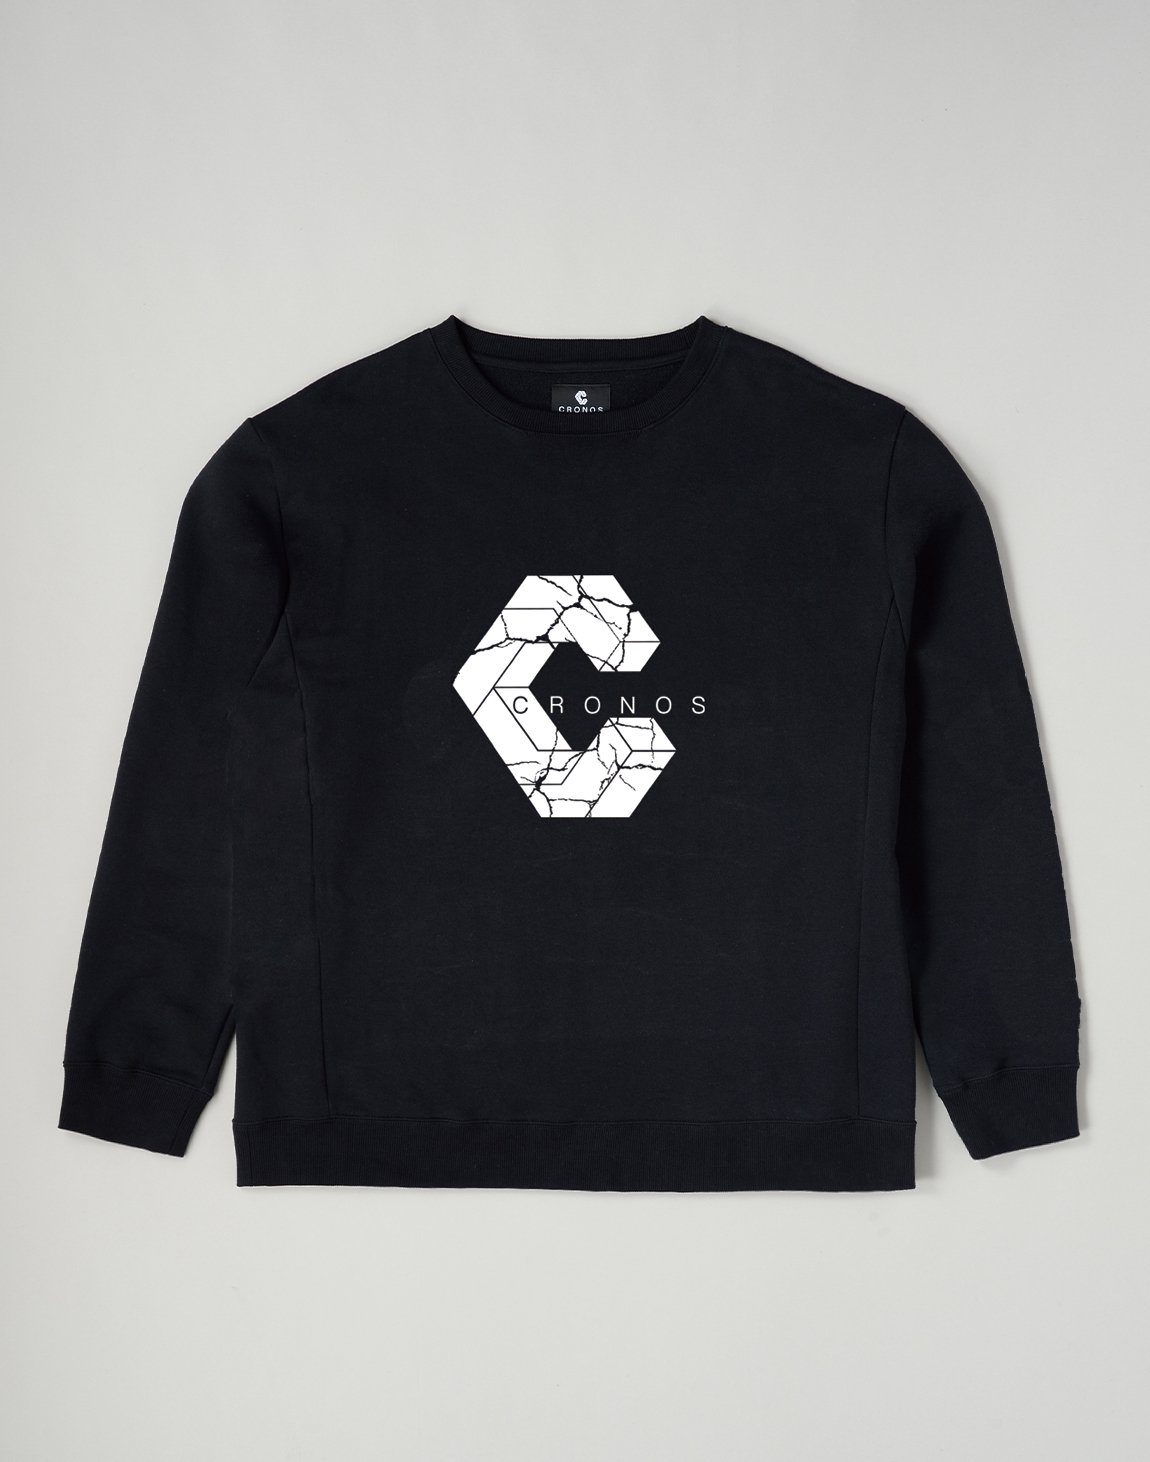 CRONOS SIGNATURE LOGO SWEATSHIRT【BLACK】